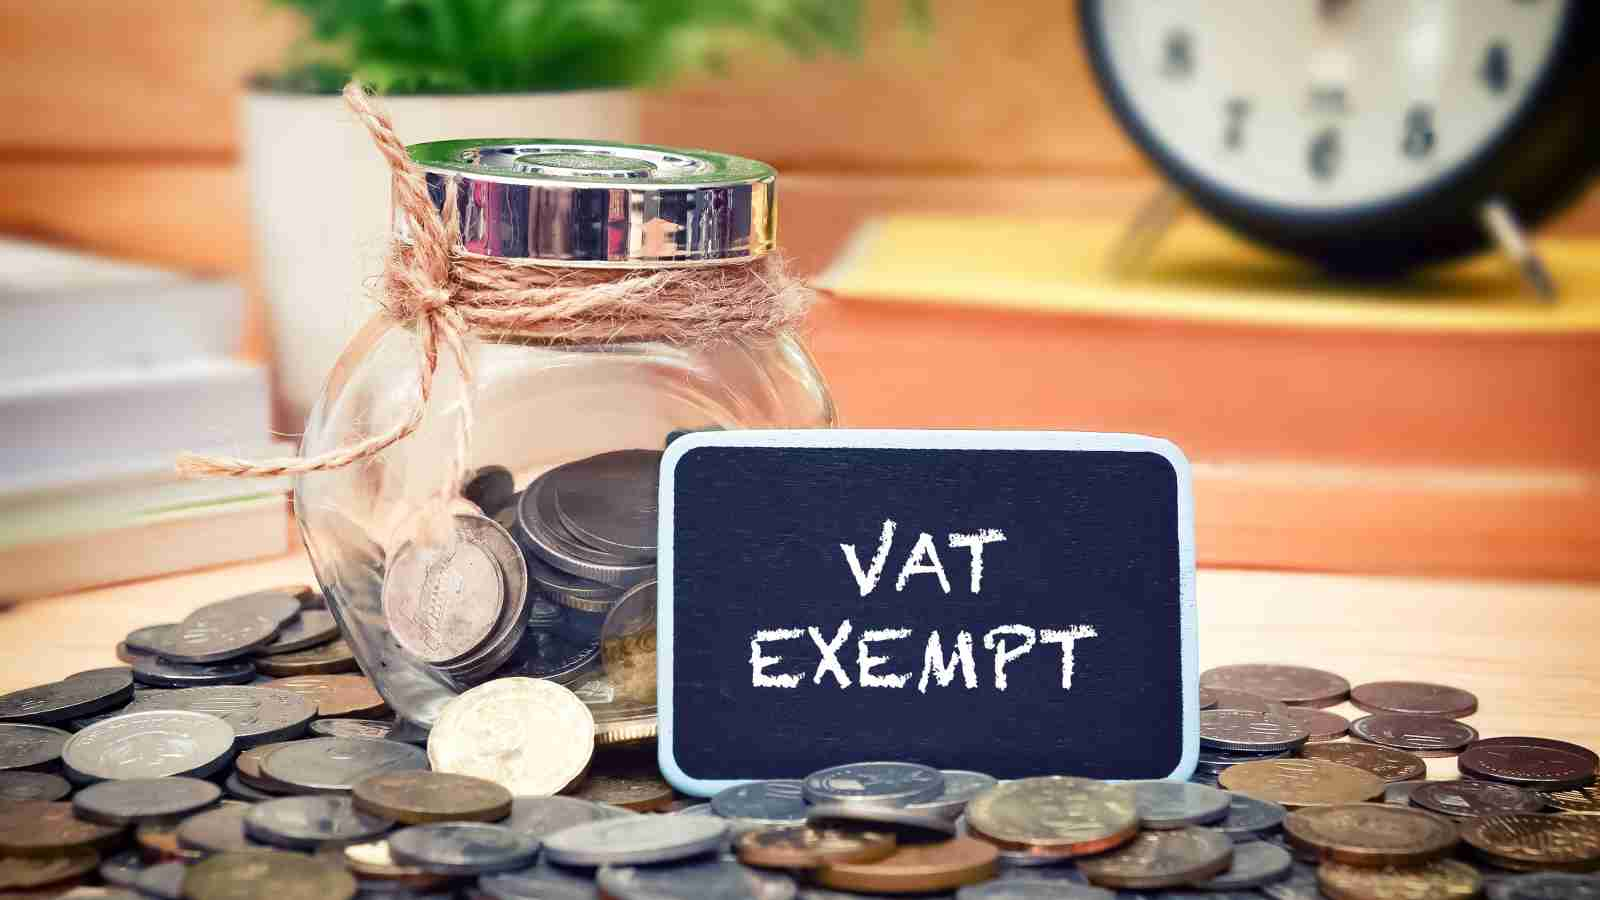 How to apply for VAT exemption